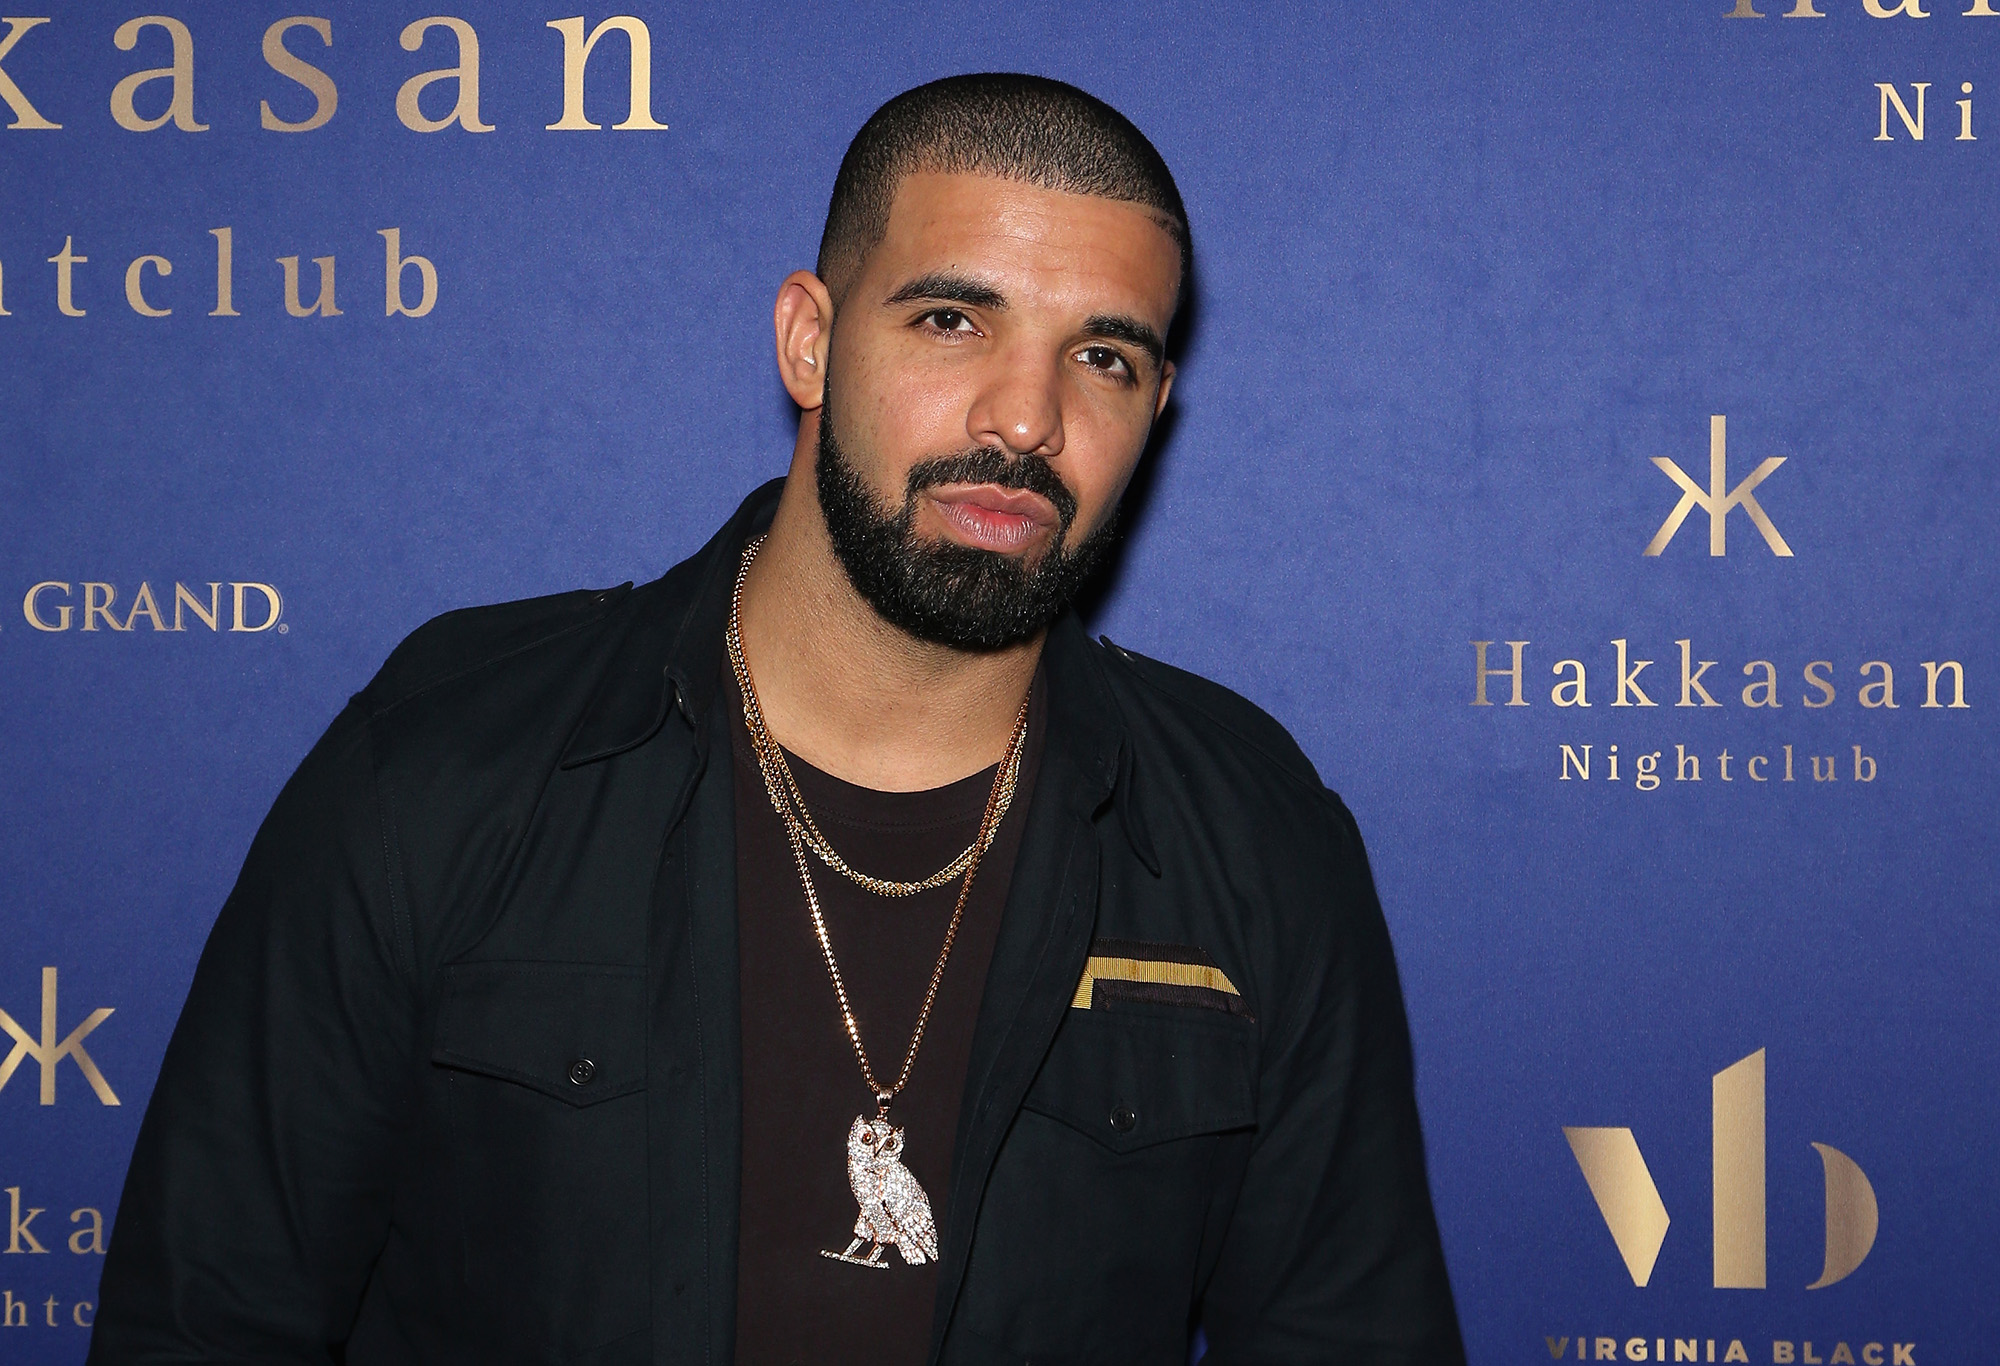 Drake attends the after party for his concert at Hakkasan Las Vegas Nightclub at MGM Grand Hotel & Casino in the early hours of September 12, 2016 in Las Vegas, Nevada.  (Photo by Gabe Ginsberg/Getty Images)